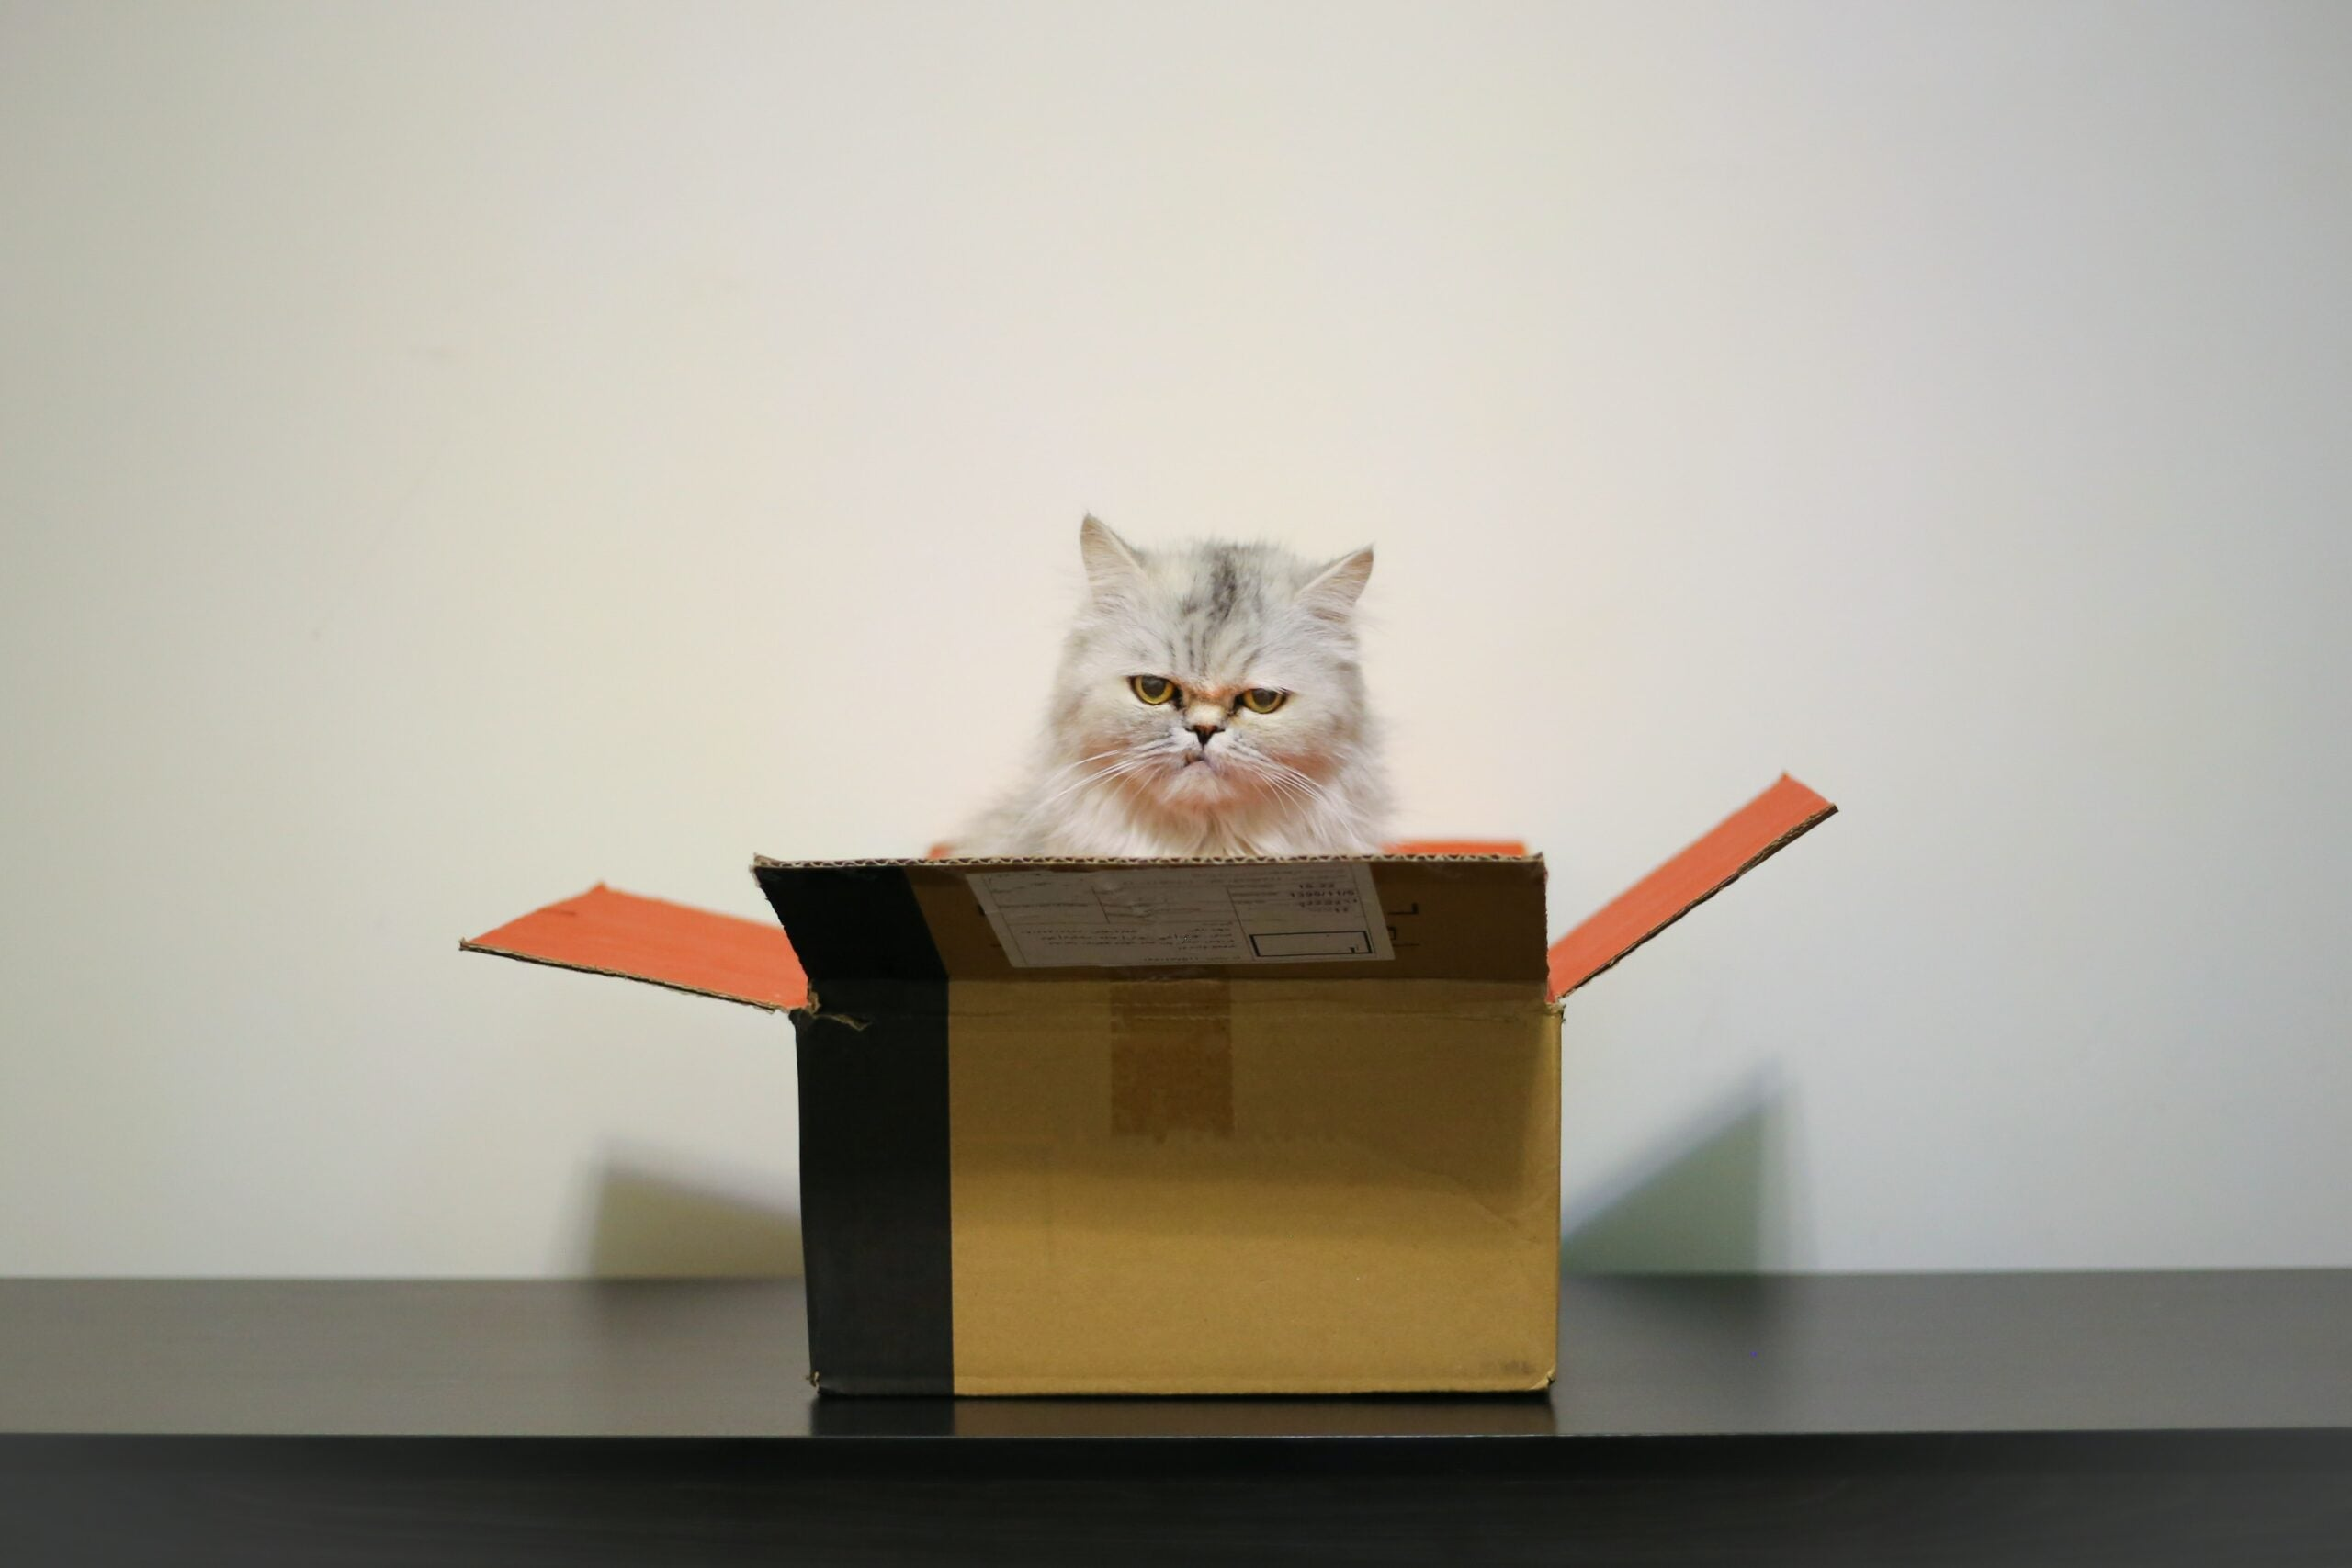 Cats love sitting in boxes so much they'll even sit in fake ones